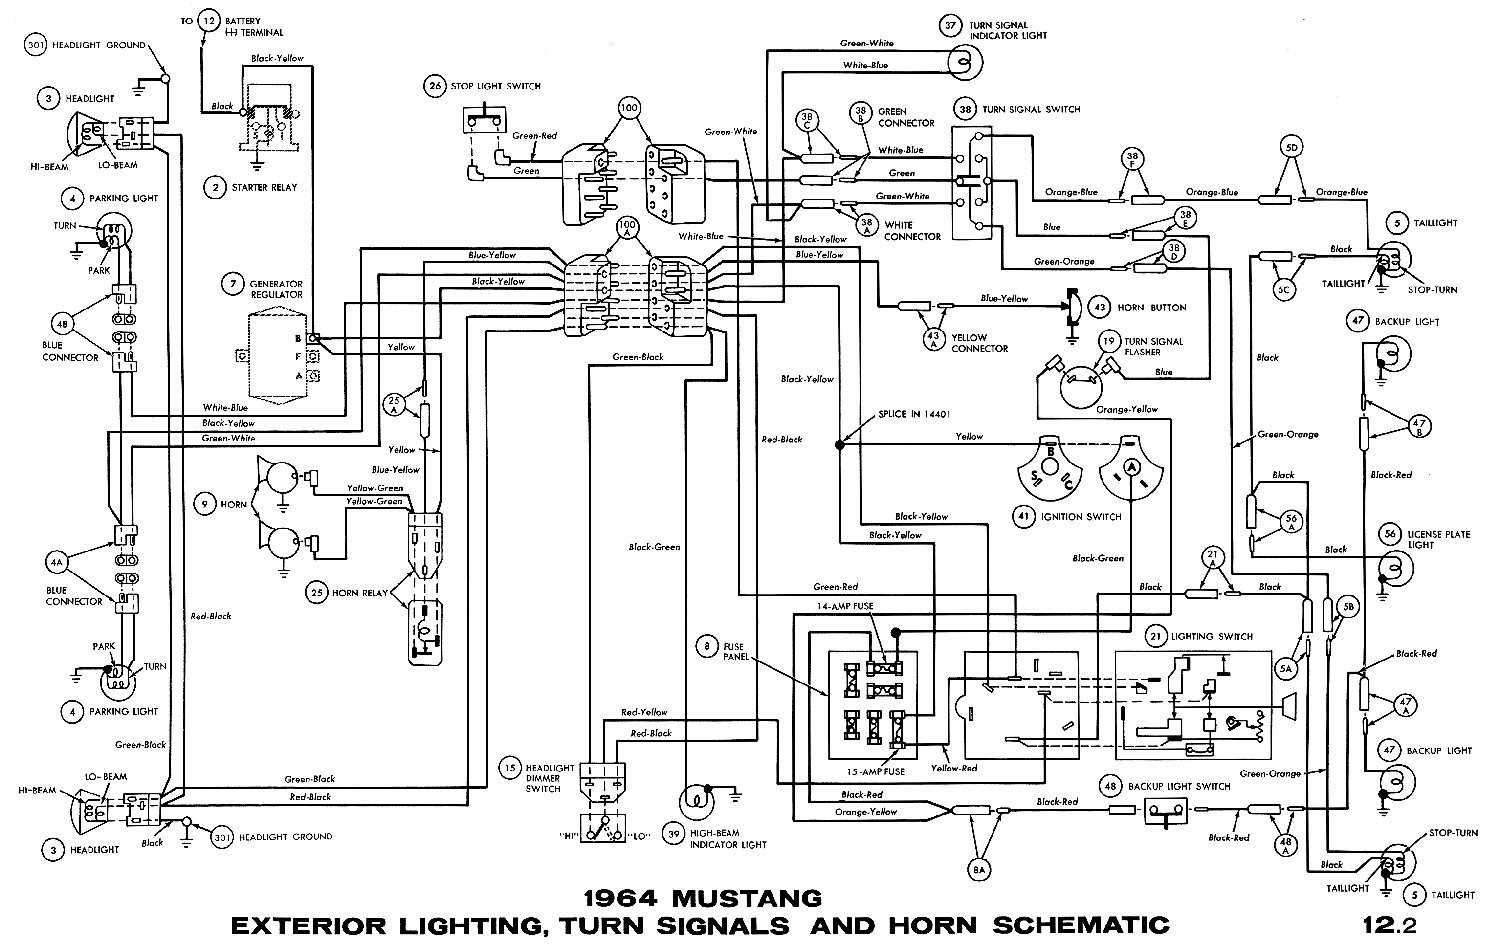 71 Ford Mustang Flasher Wiring - Wiring Diagram Recent fold-grand -  fold-grand.cosavedereanapoli.it | 71 Mercury Cougar Wiring Diagram |  | fold-grand.cosavedereanapoli.it